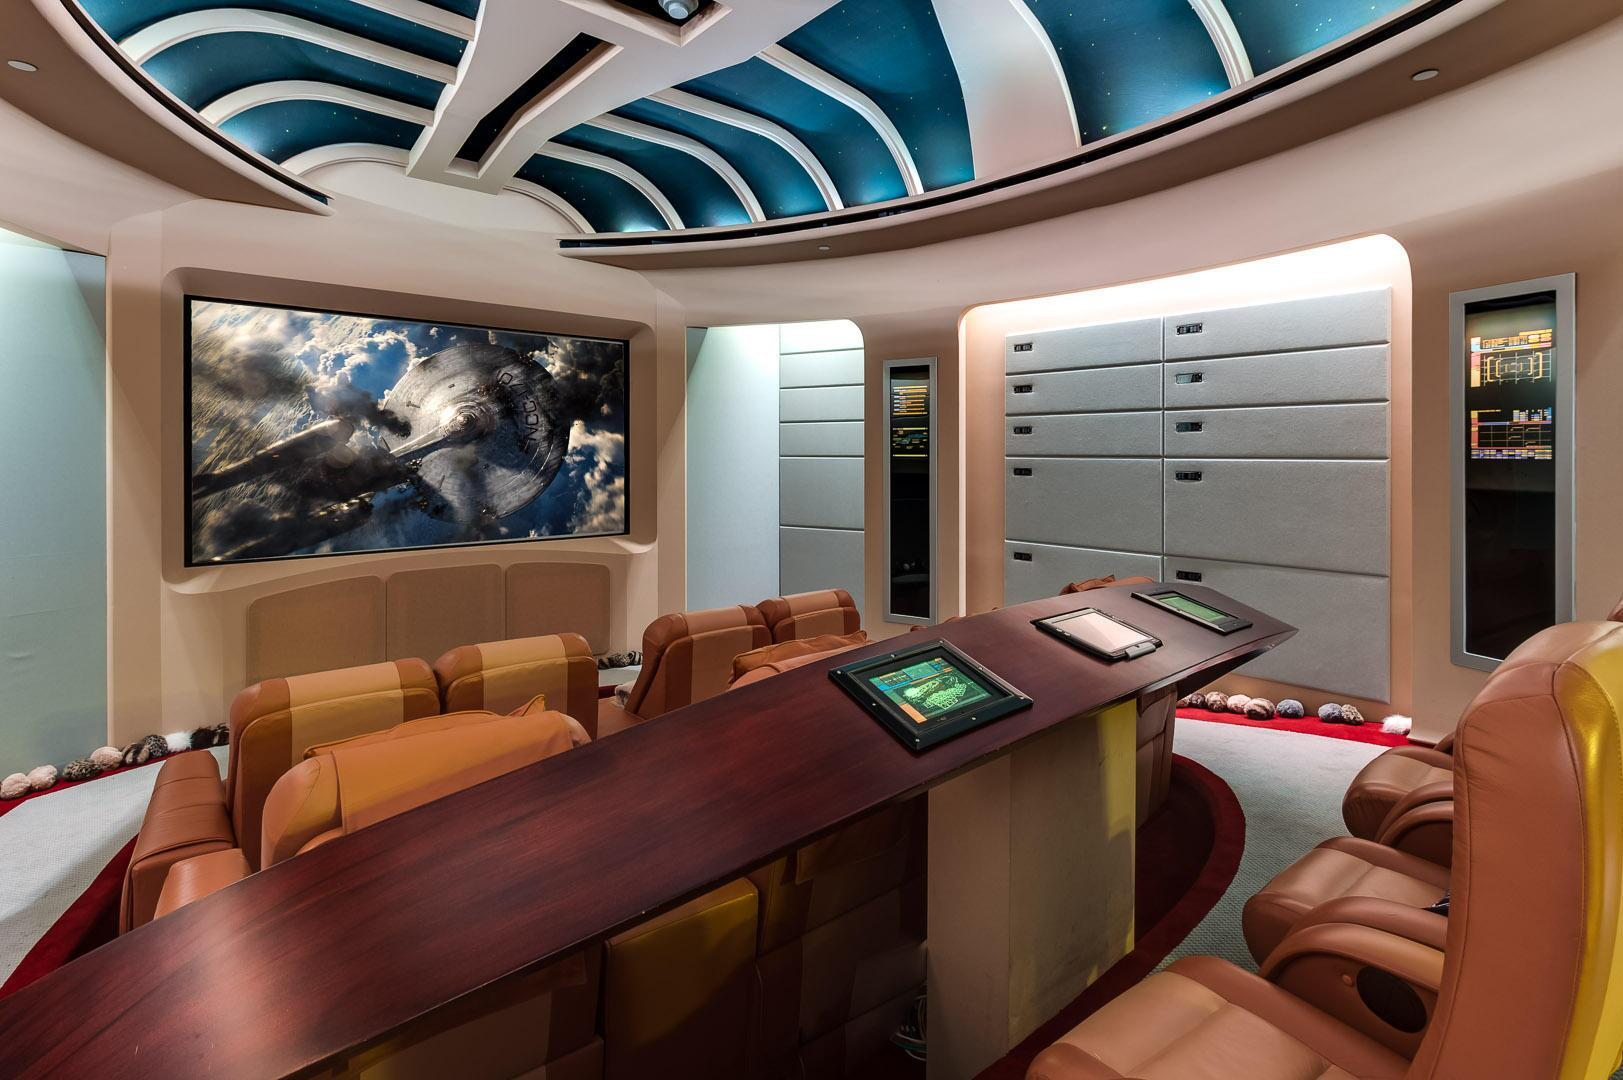 Twitter / zaibatsu: Cool Star Trek home theater ...